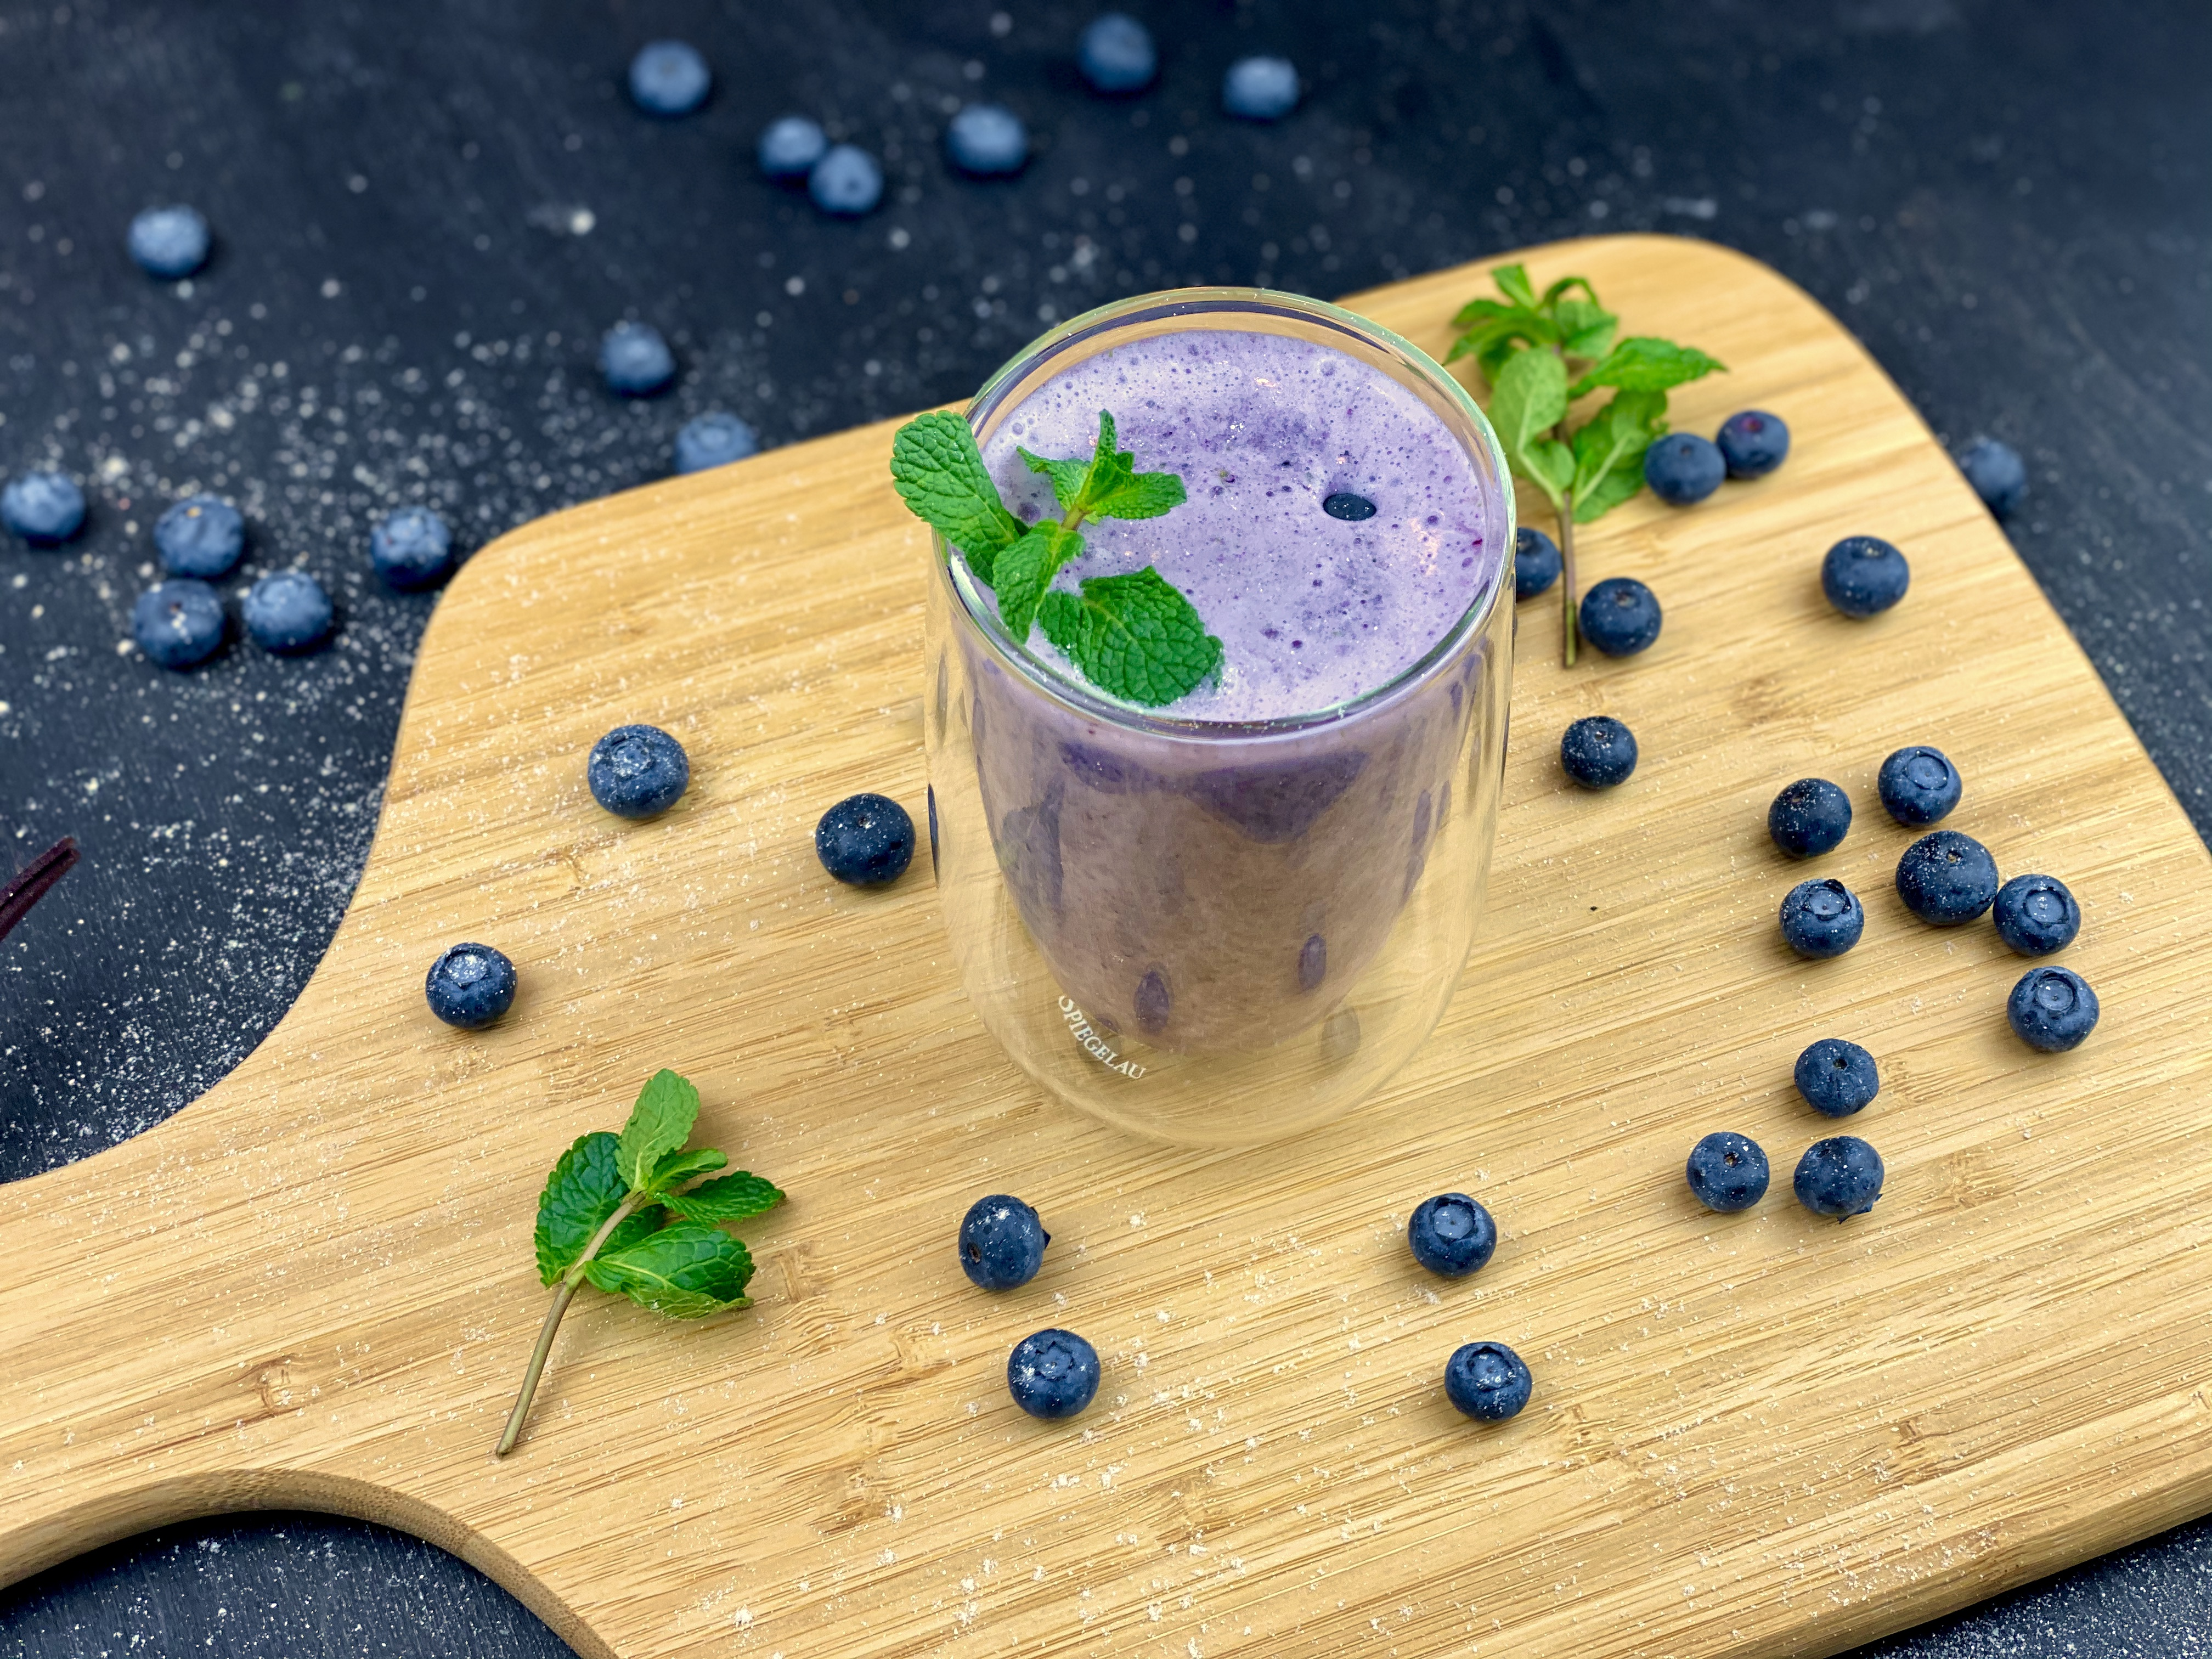 File:Healthy Blueberry Smoothie.jpg - Wikimedia Commons